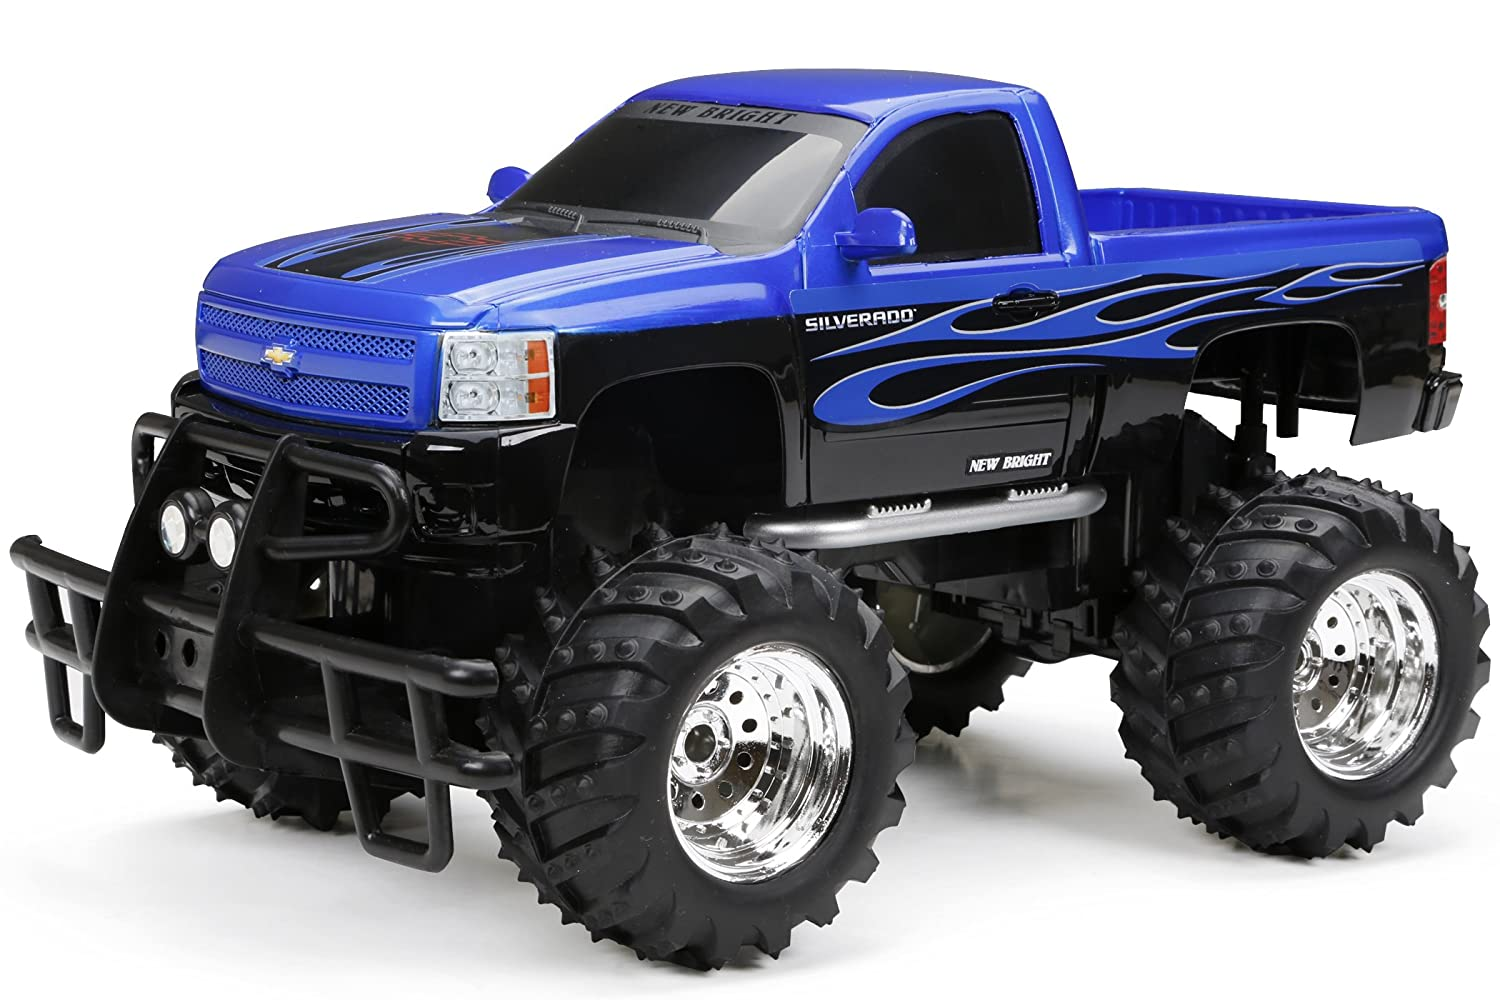 New Bright 114 Radio Control Chevy Silverado Styles Big Blue Jacked Up Truck May Vary Toys Games